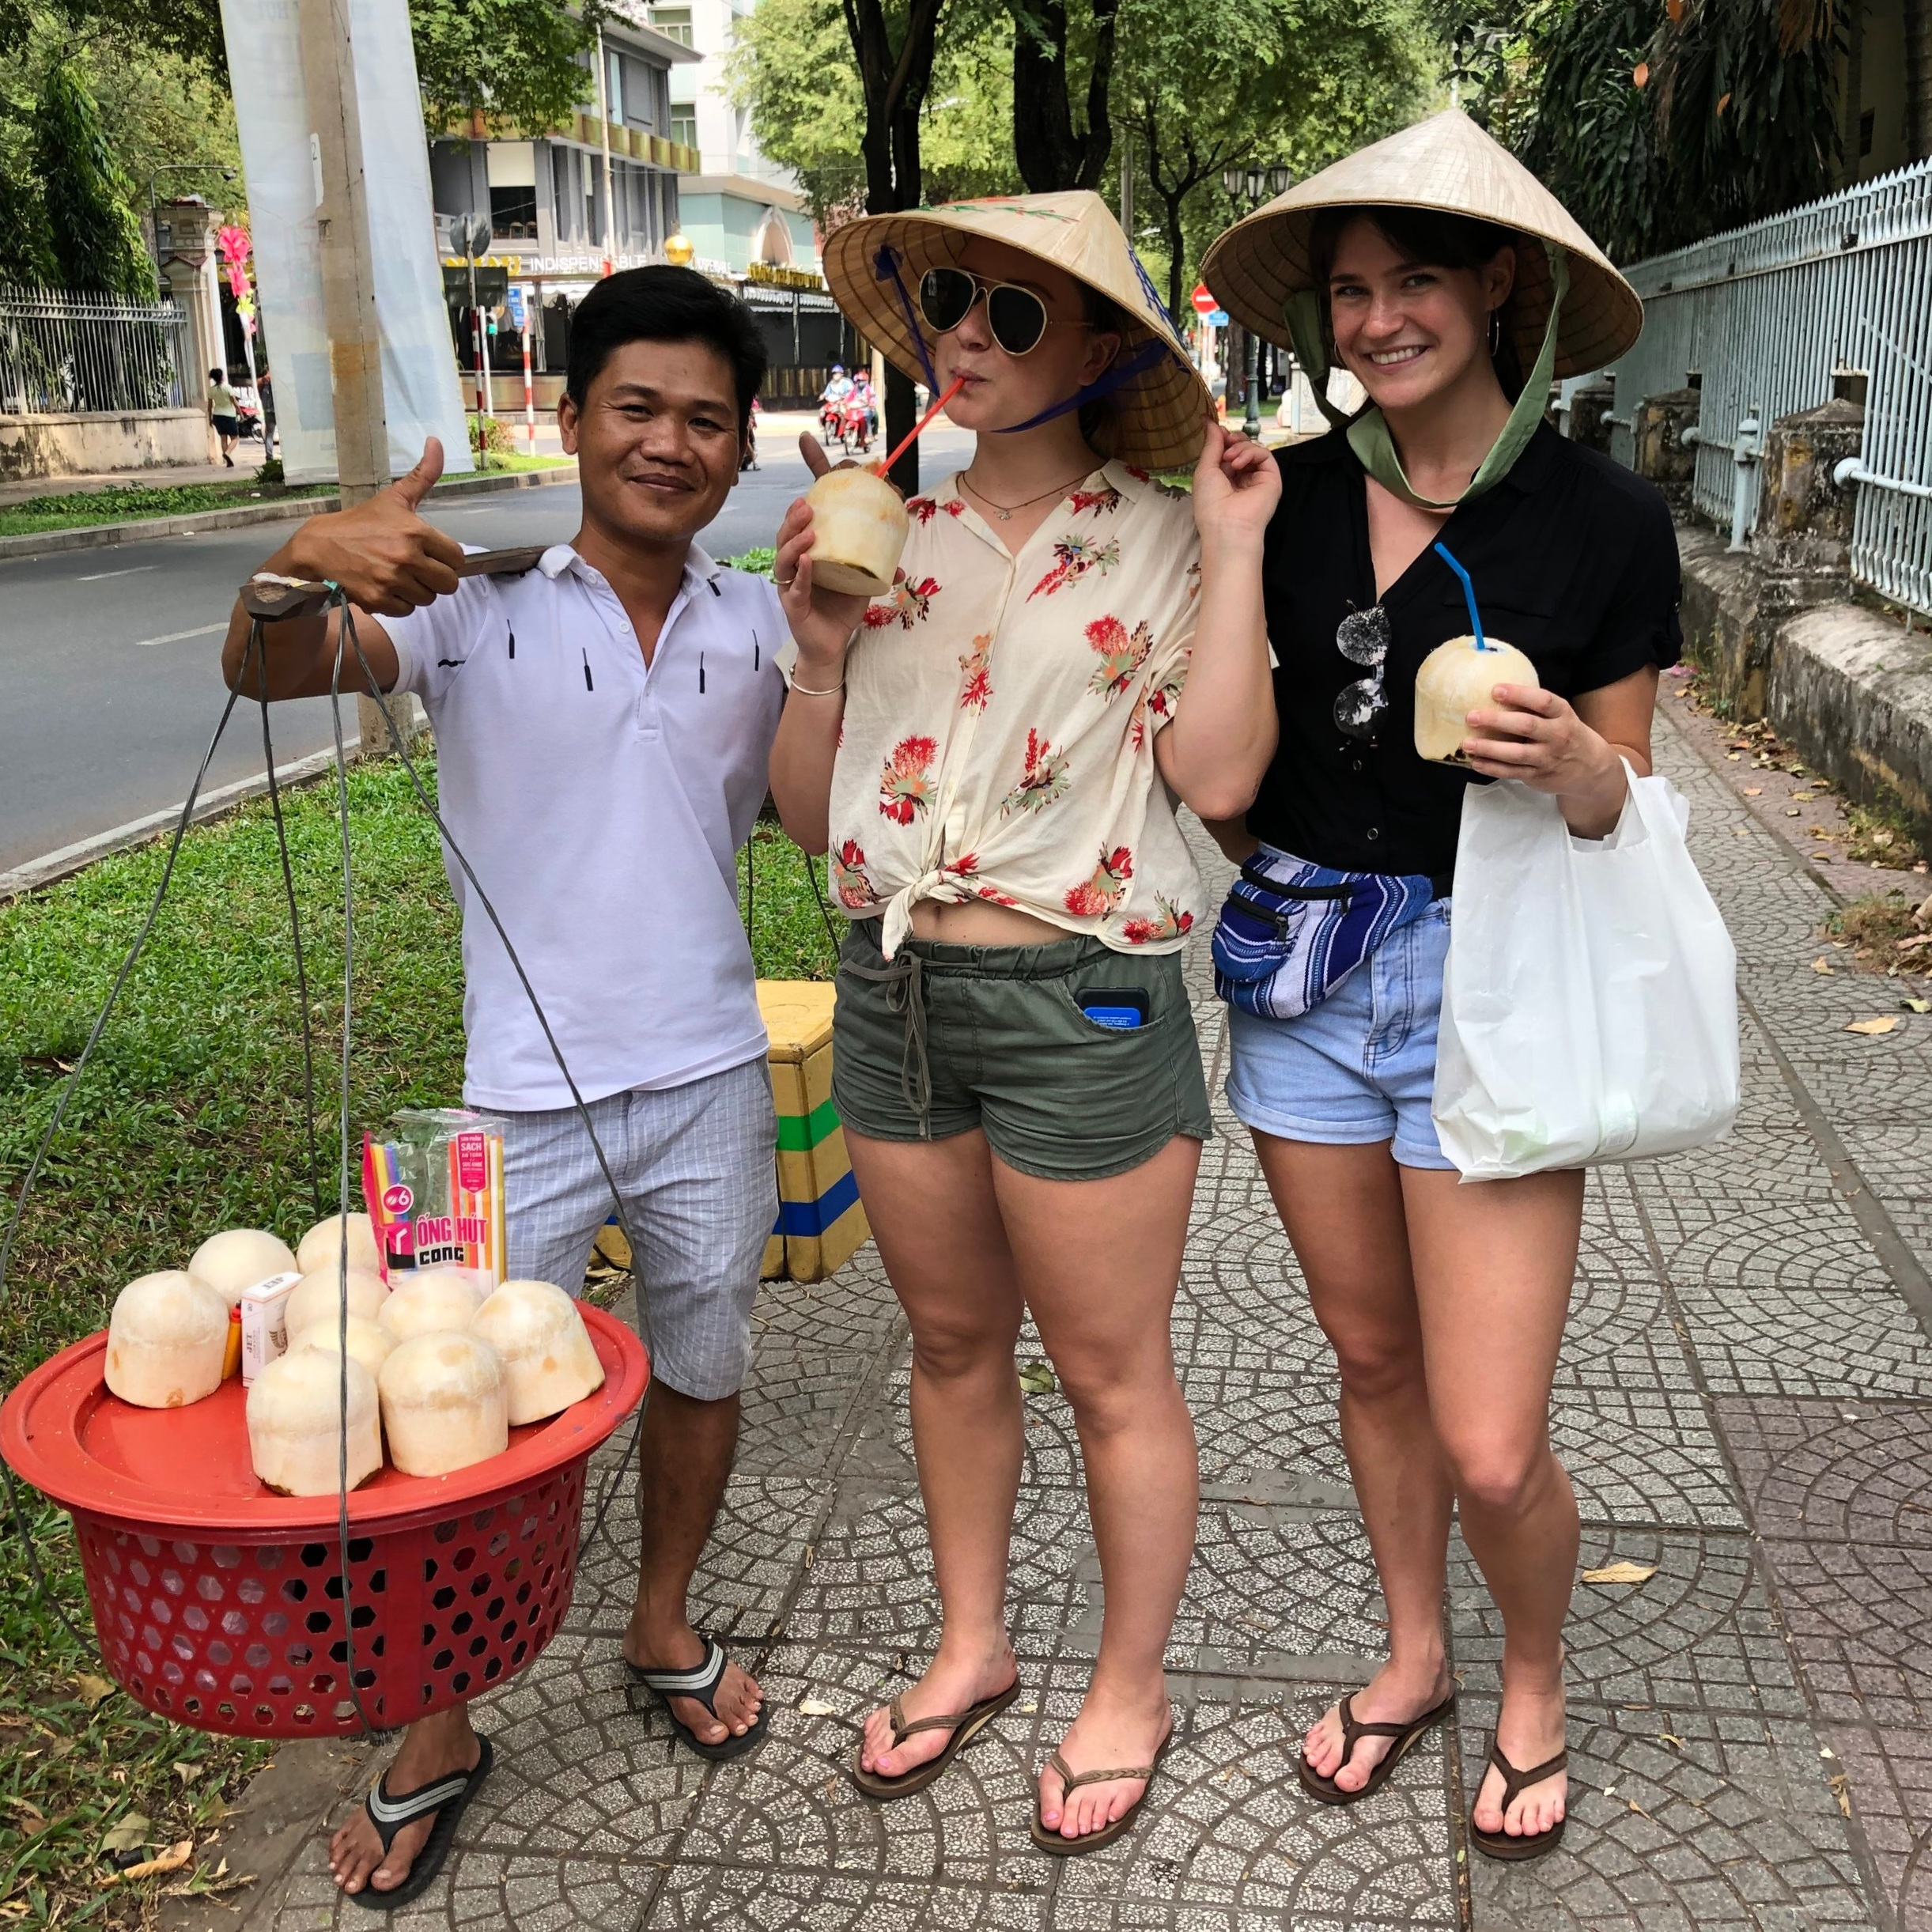 Sophia and me posing with our new coconut friend. The rice hats instantly gave our tourist identities away.